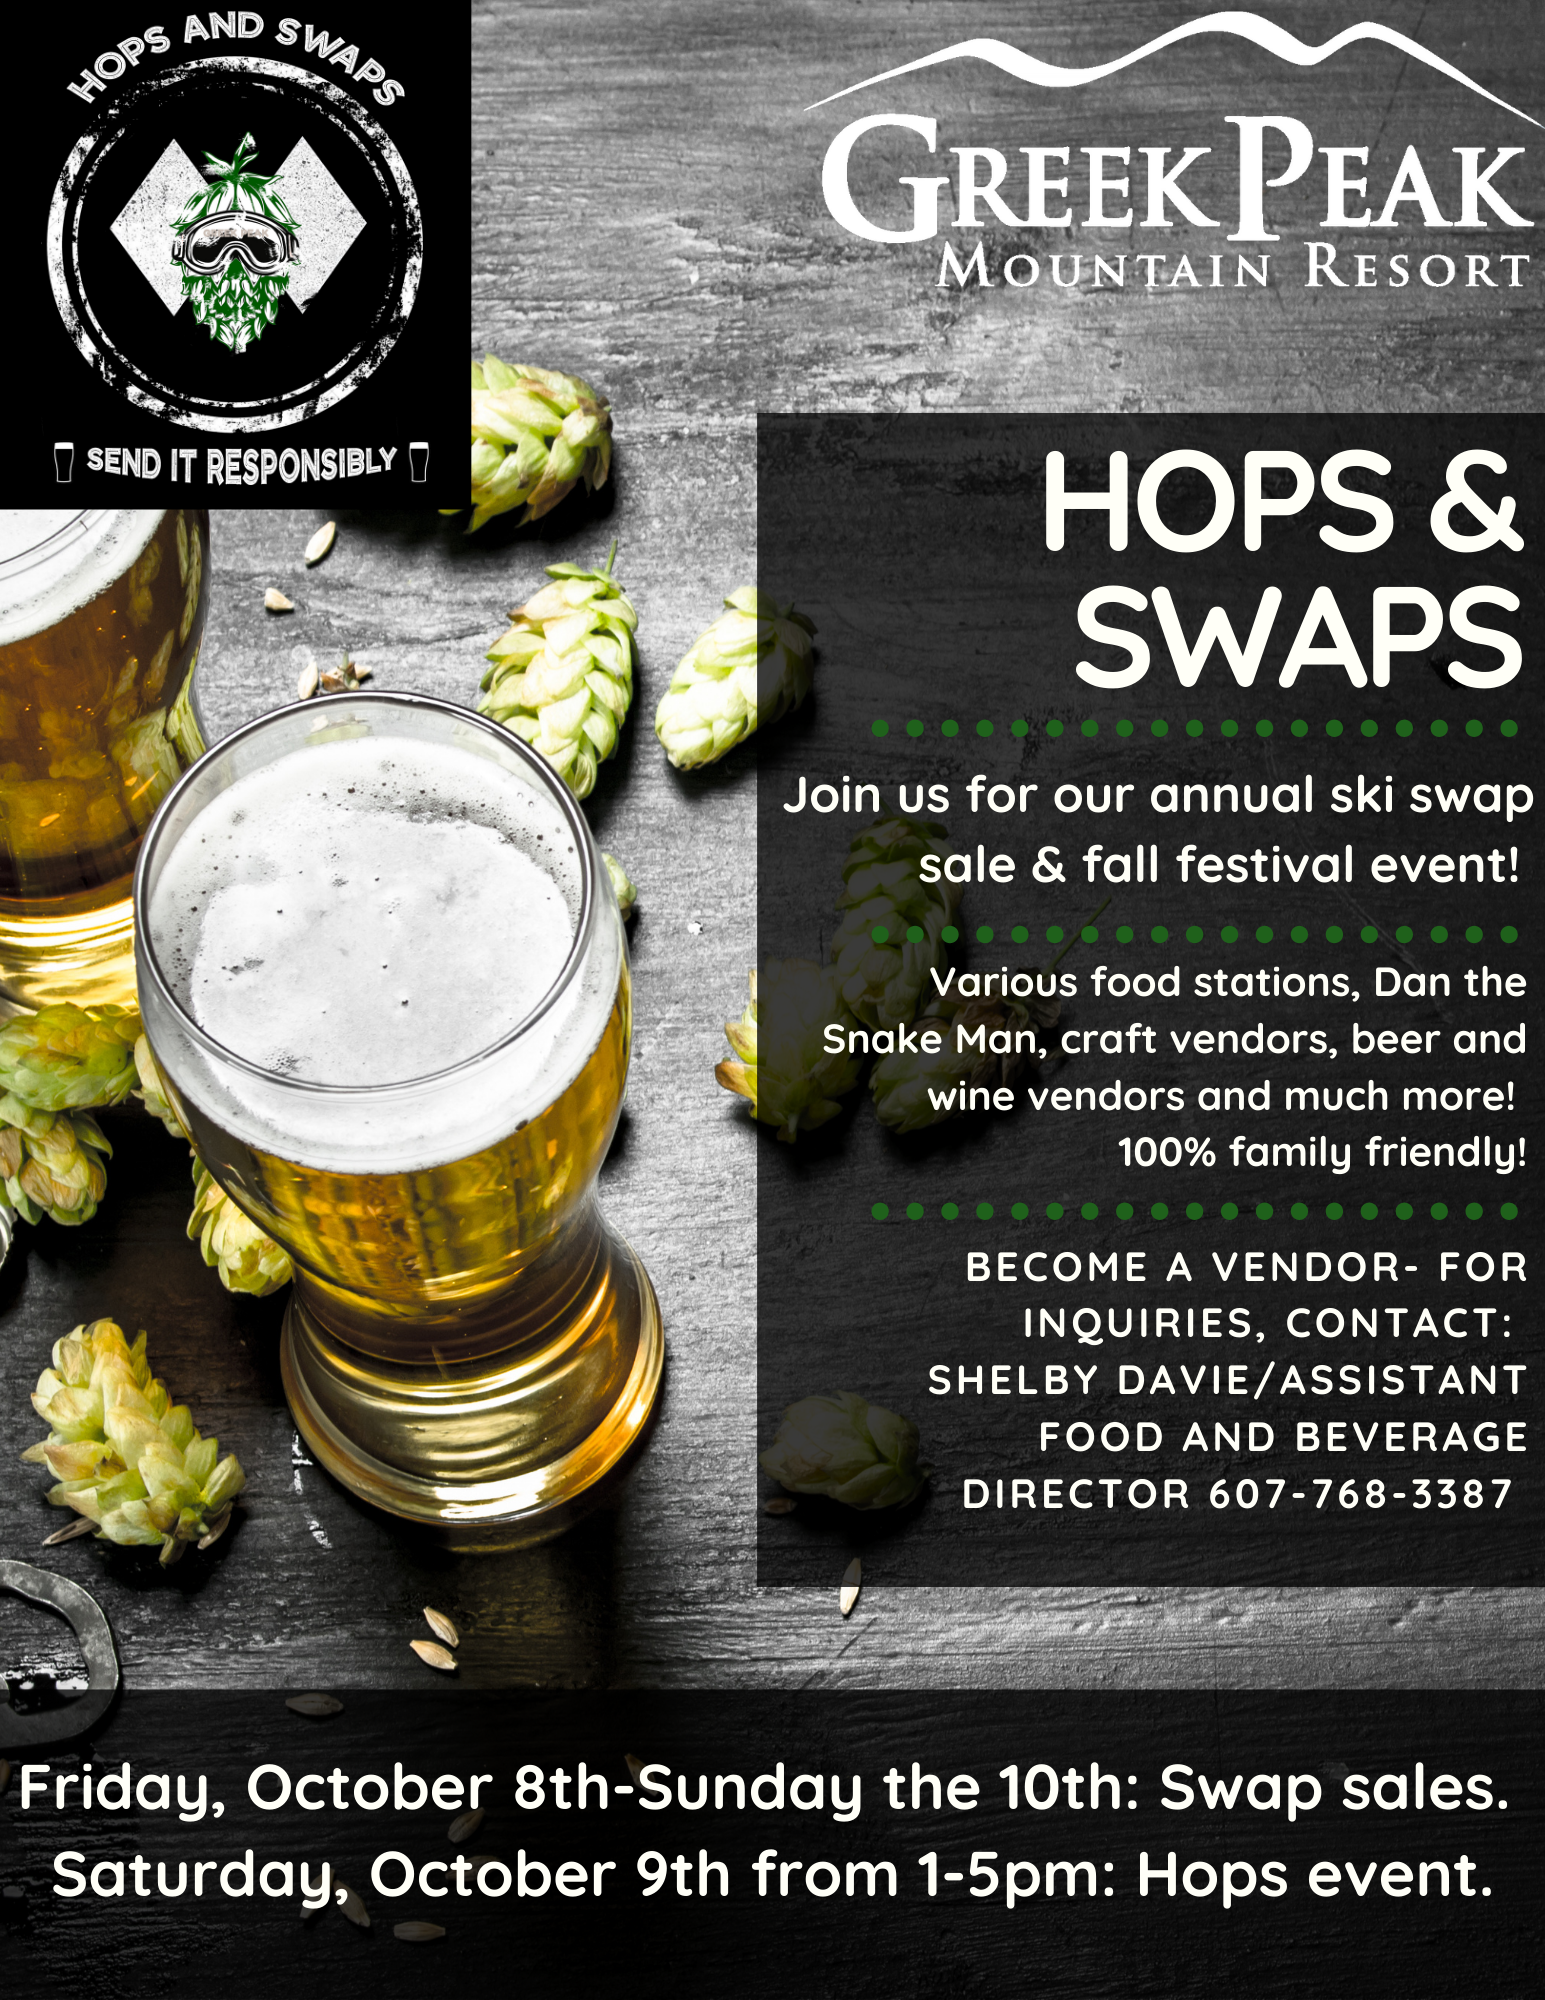 Hops & Swaps flyer- includes information about food, Dan the Snake Man, craft and beer vendors & the event is 100% family friendly. Contact Shelby Davie if you have interest in becoming a vendor for the fall festival: 607-768-3387. Dates of event are October 8th-10th.